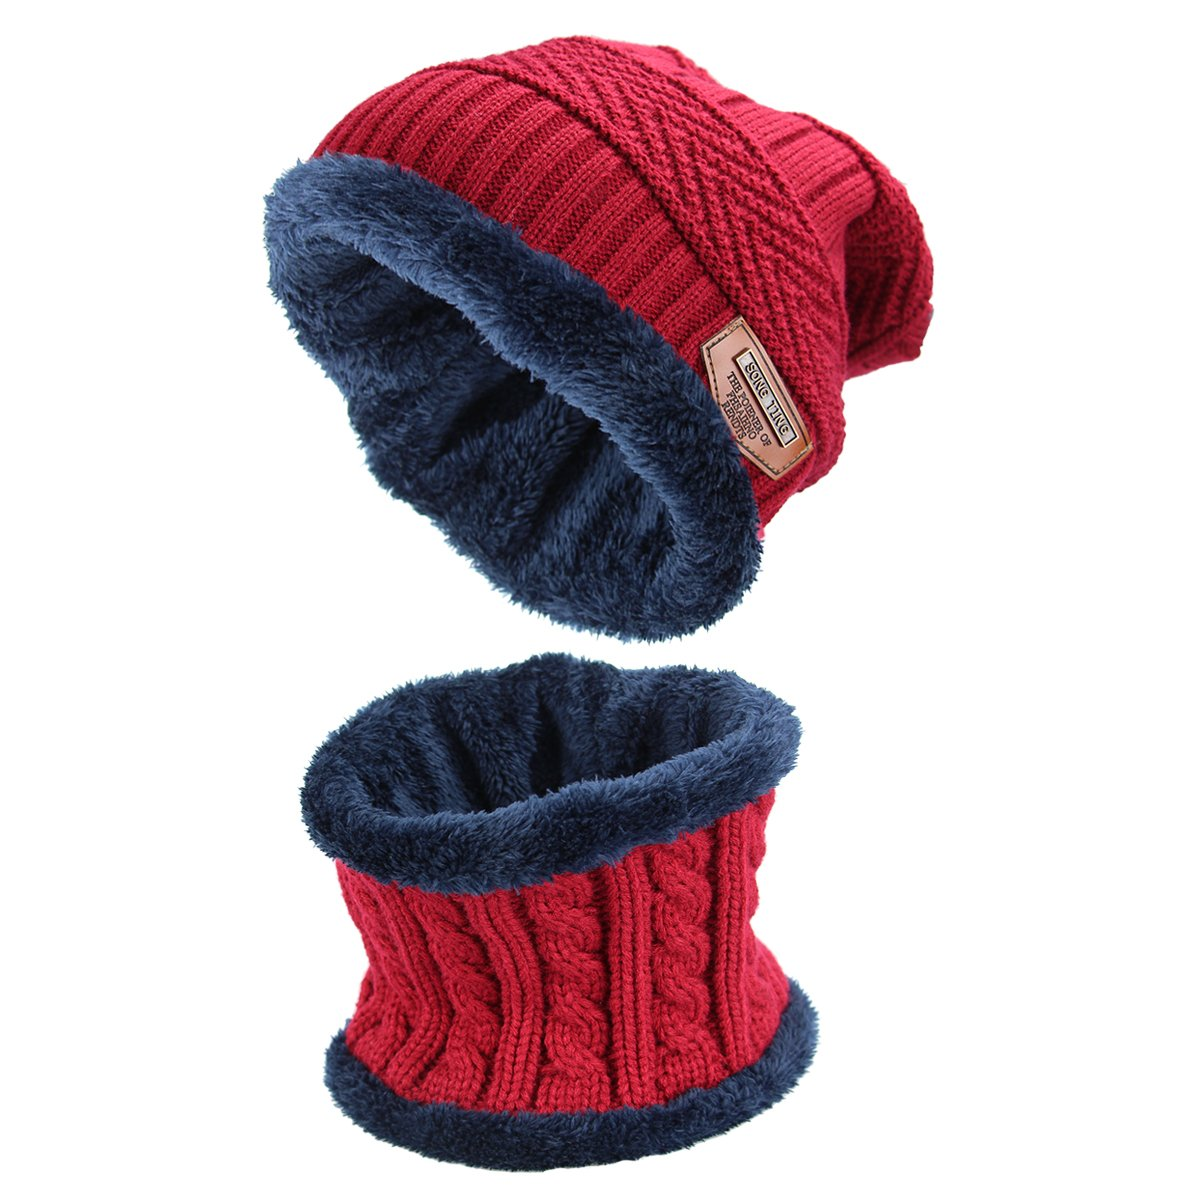 Hat Scarf Set Thick Knit Hat Warm Fleece Lined Scarf Warm Winter Hat for Men & Women Hat and Scarf Set Red (black) I165502Q1823141